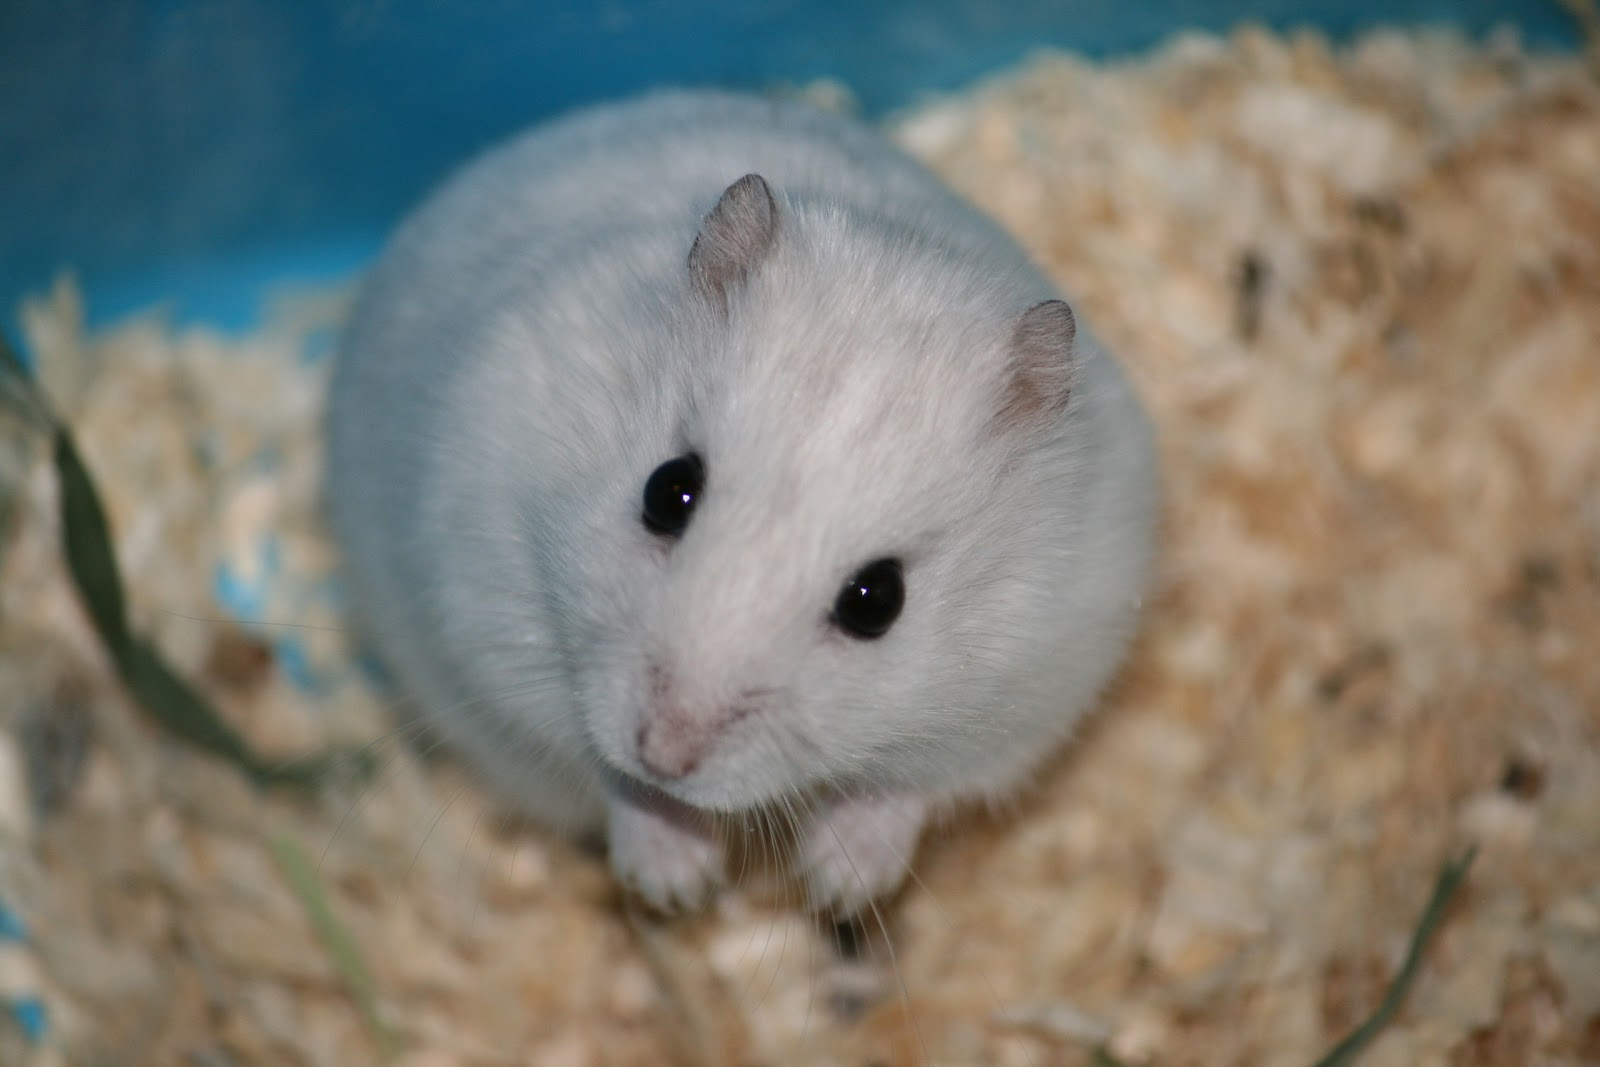 Cute Baby Hamsters Wallpaper Little White Hamster Computer Screen Saver Pc Desktop